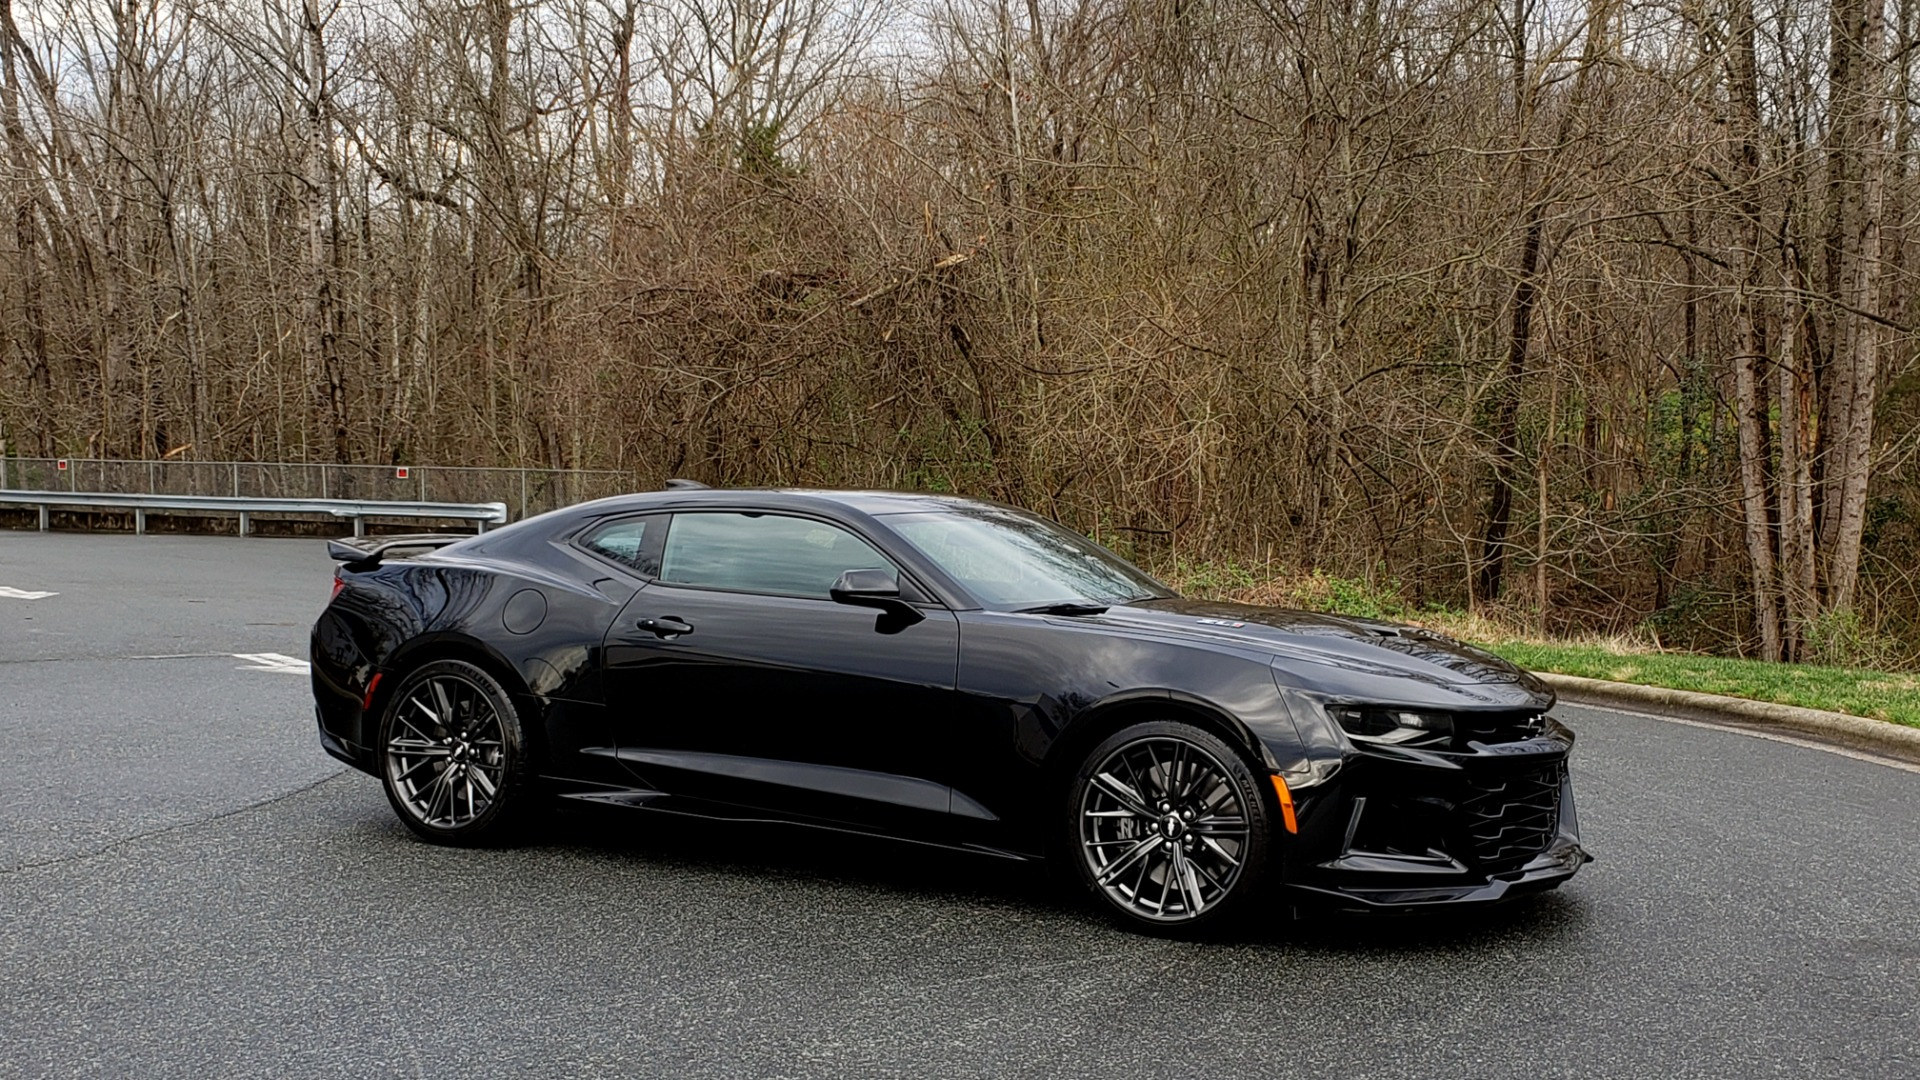 Used 2018 Chevrolet CAMARO ZL1 6.2L SUPERCHARGED V8 650 / NAV / SUNROOF / REARVIEW for sale Sold at Formula Imports in Charlotte NC 28227 7